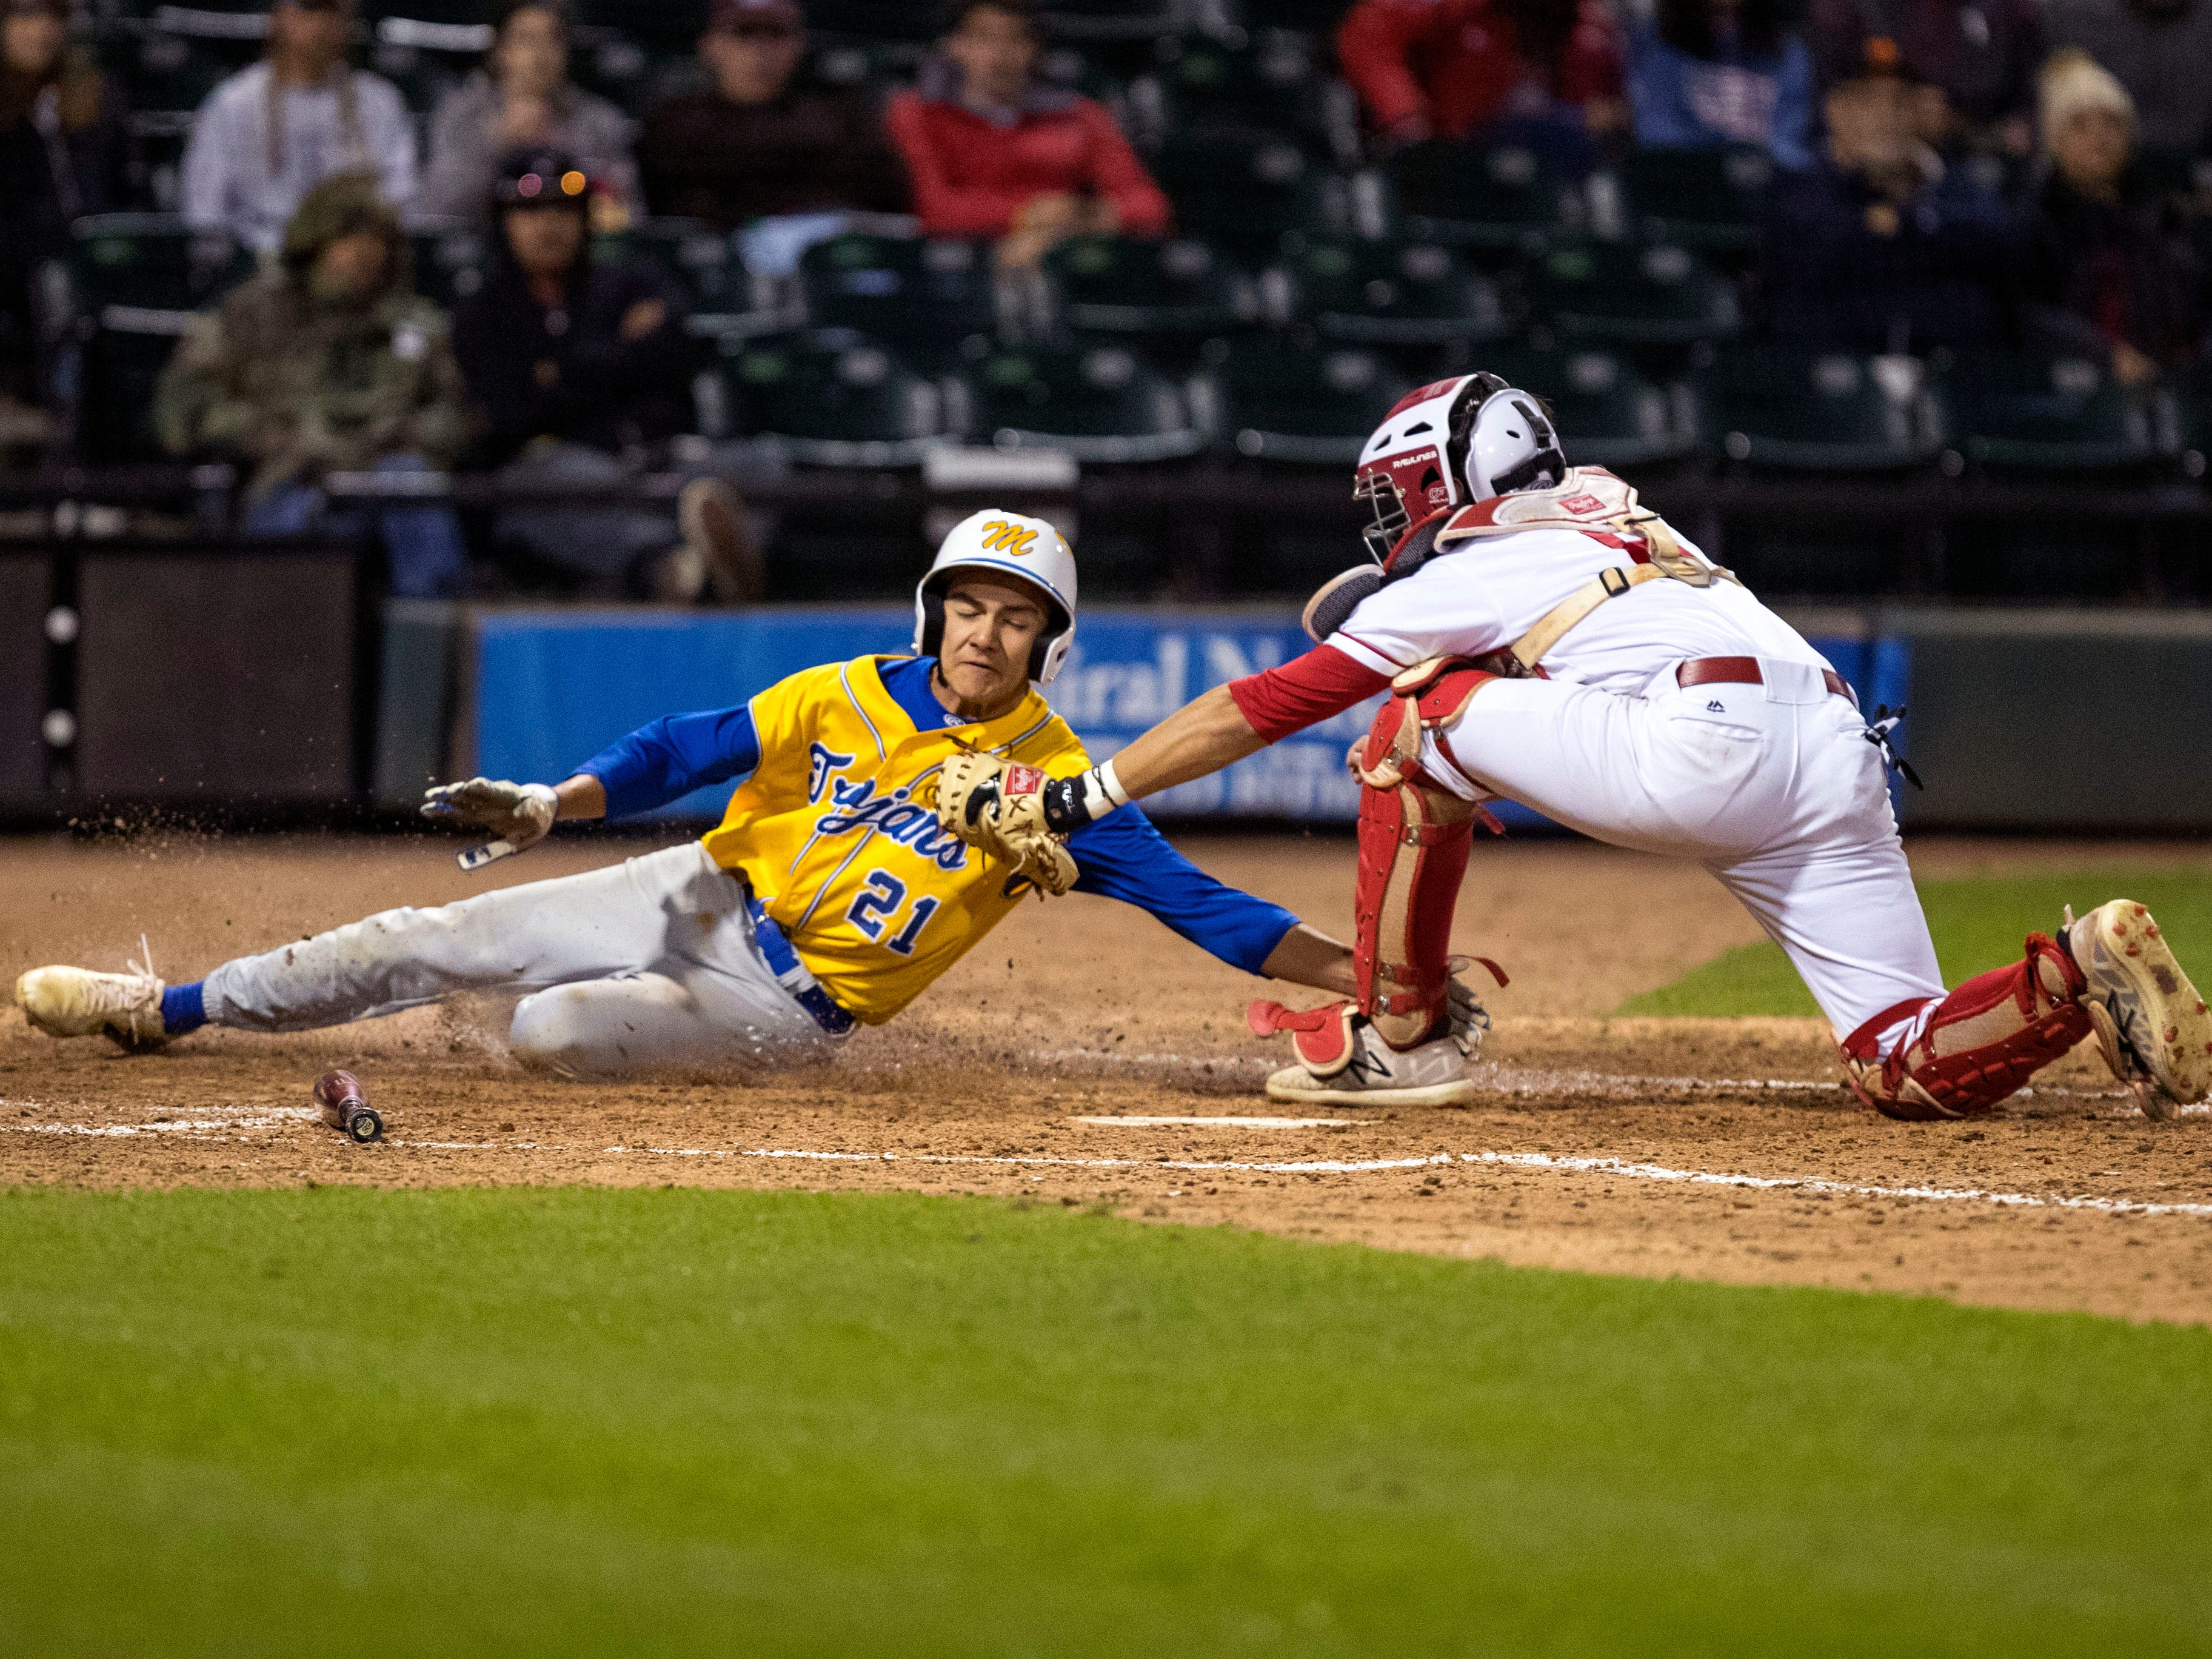 The Moody Trojans' Ryan Espinosa is out at home plate as Ray Texans pitcher Sam Canales gets the tag in during the sixth inning of the game at Whataburger Field on Monday, February 18, 2019. Moody took an early lead to beat Ray 7-3.